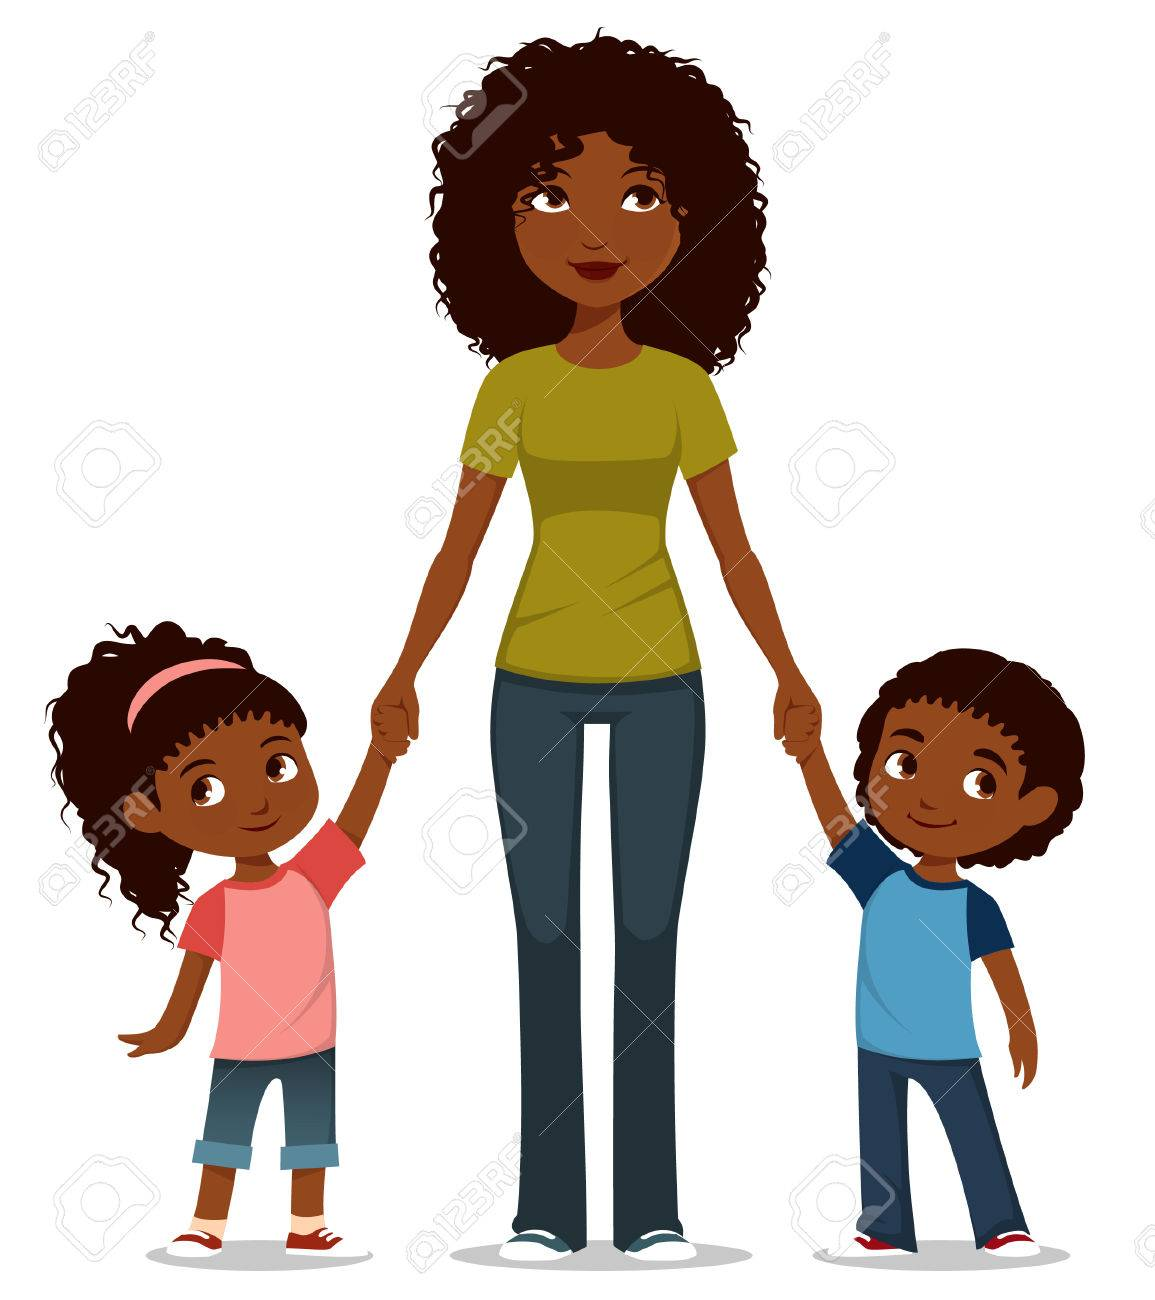 cartoon illustration of an African American mother with two kids.